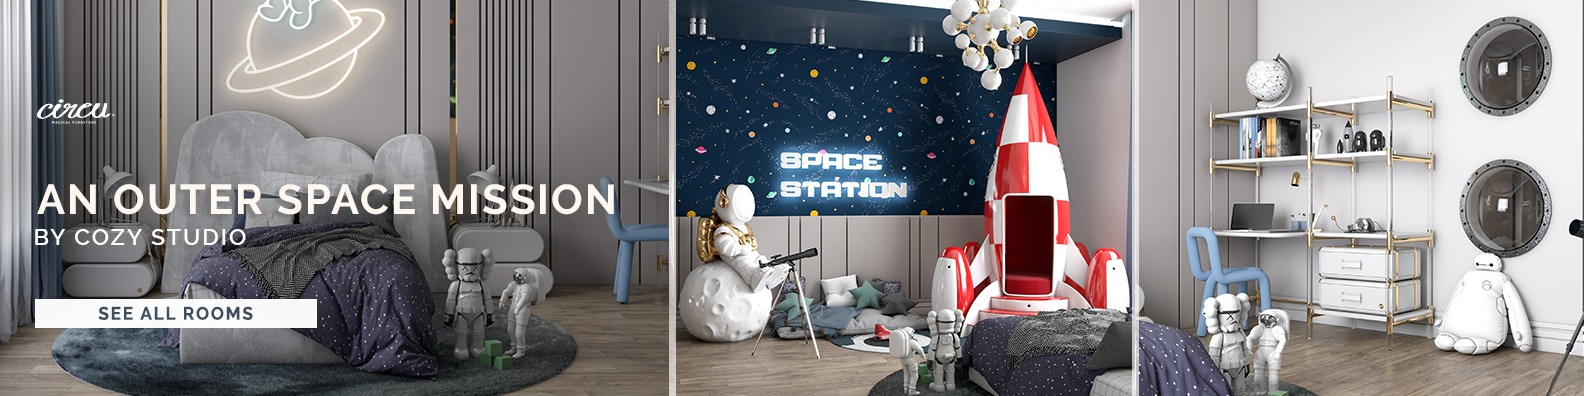 AN OUTER SPACE MISSION